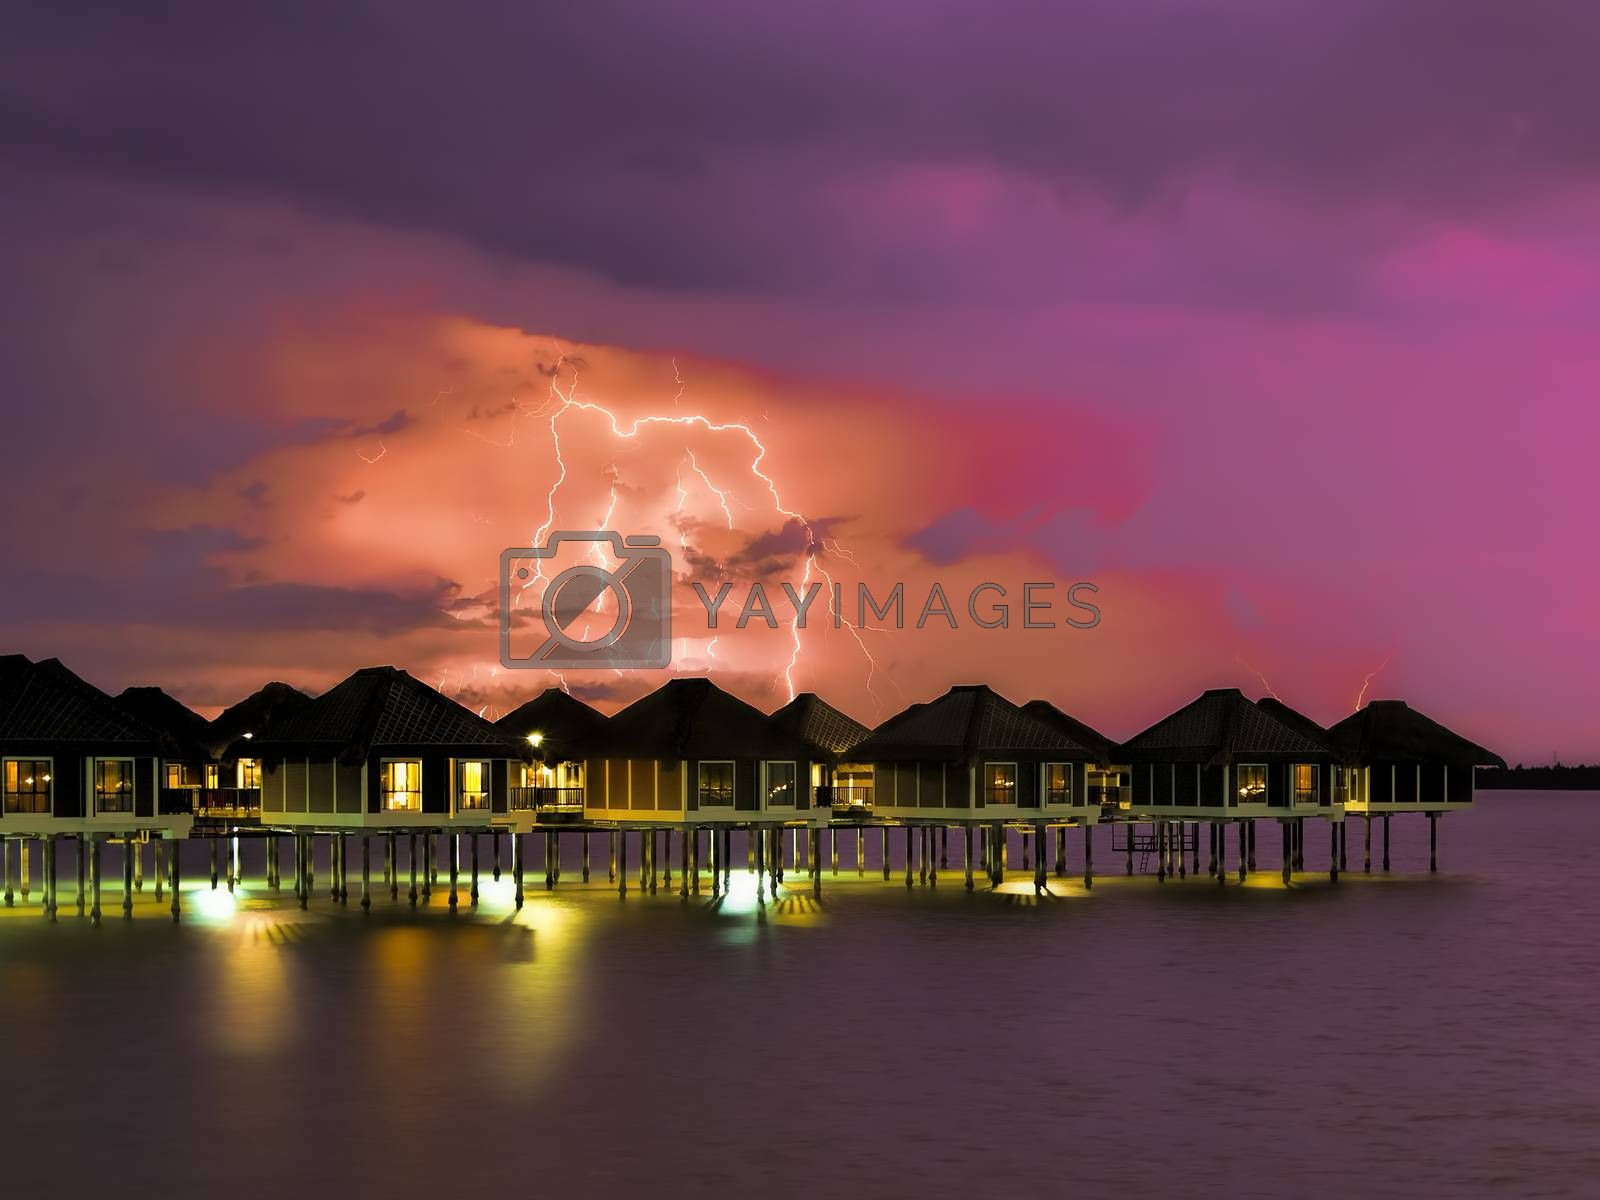 Lightning colouring the sky over water villas at night